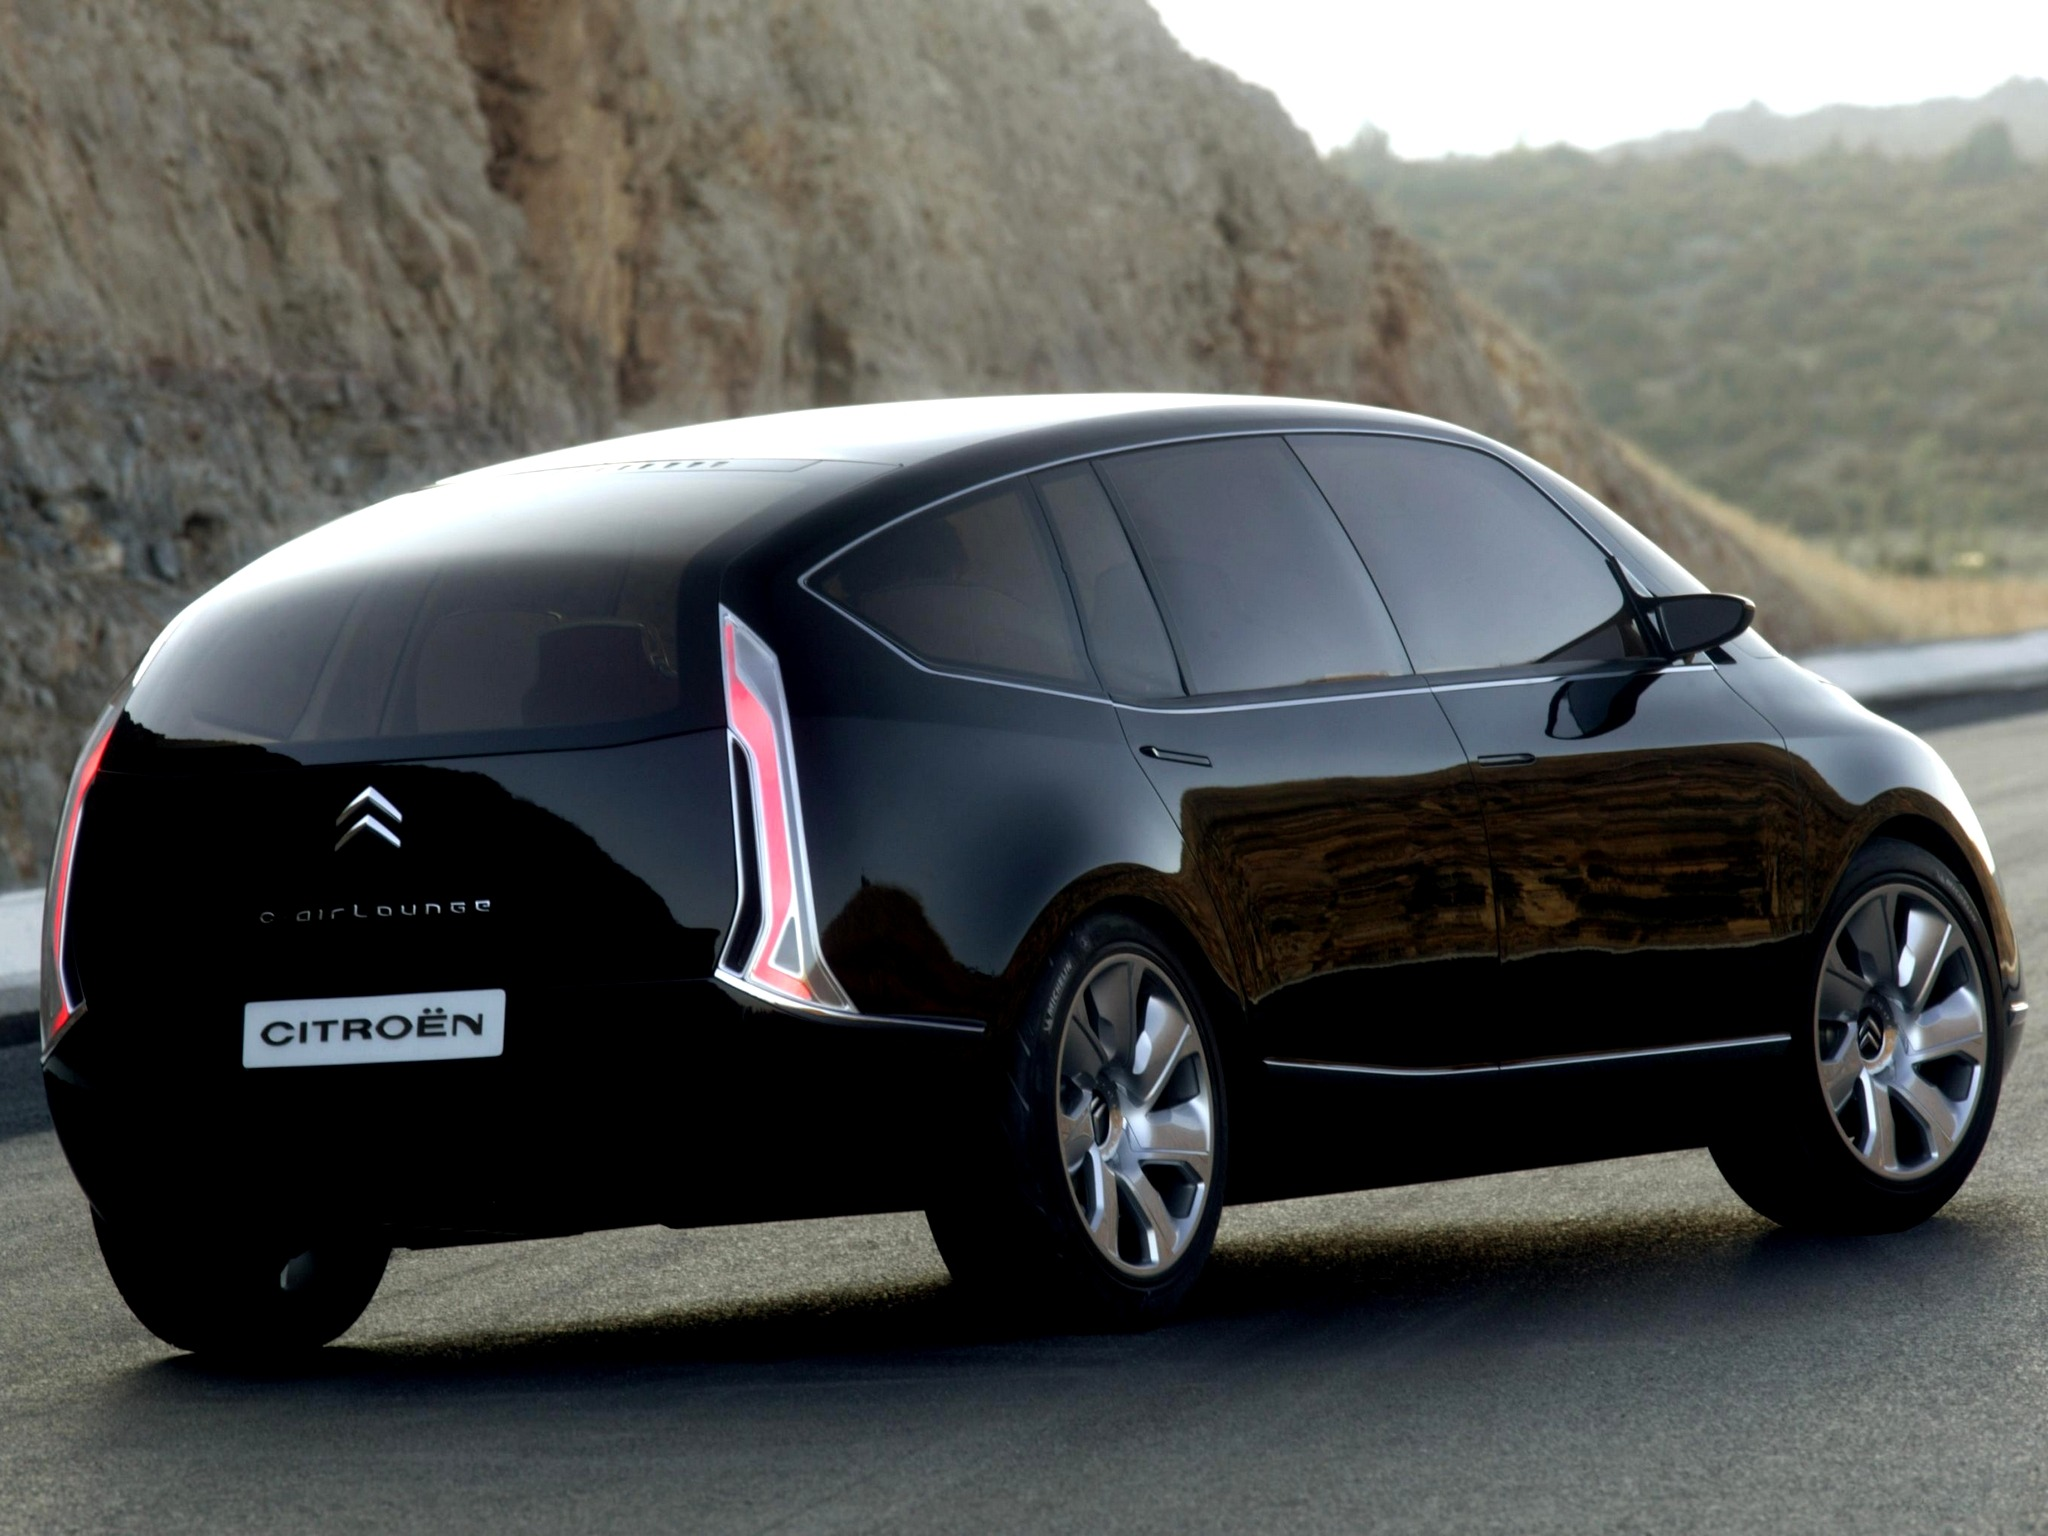 Top Fastest Cars >> Citroën C-Airlounge Concept (2003) - Old Concept Cars